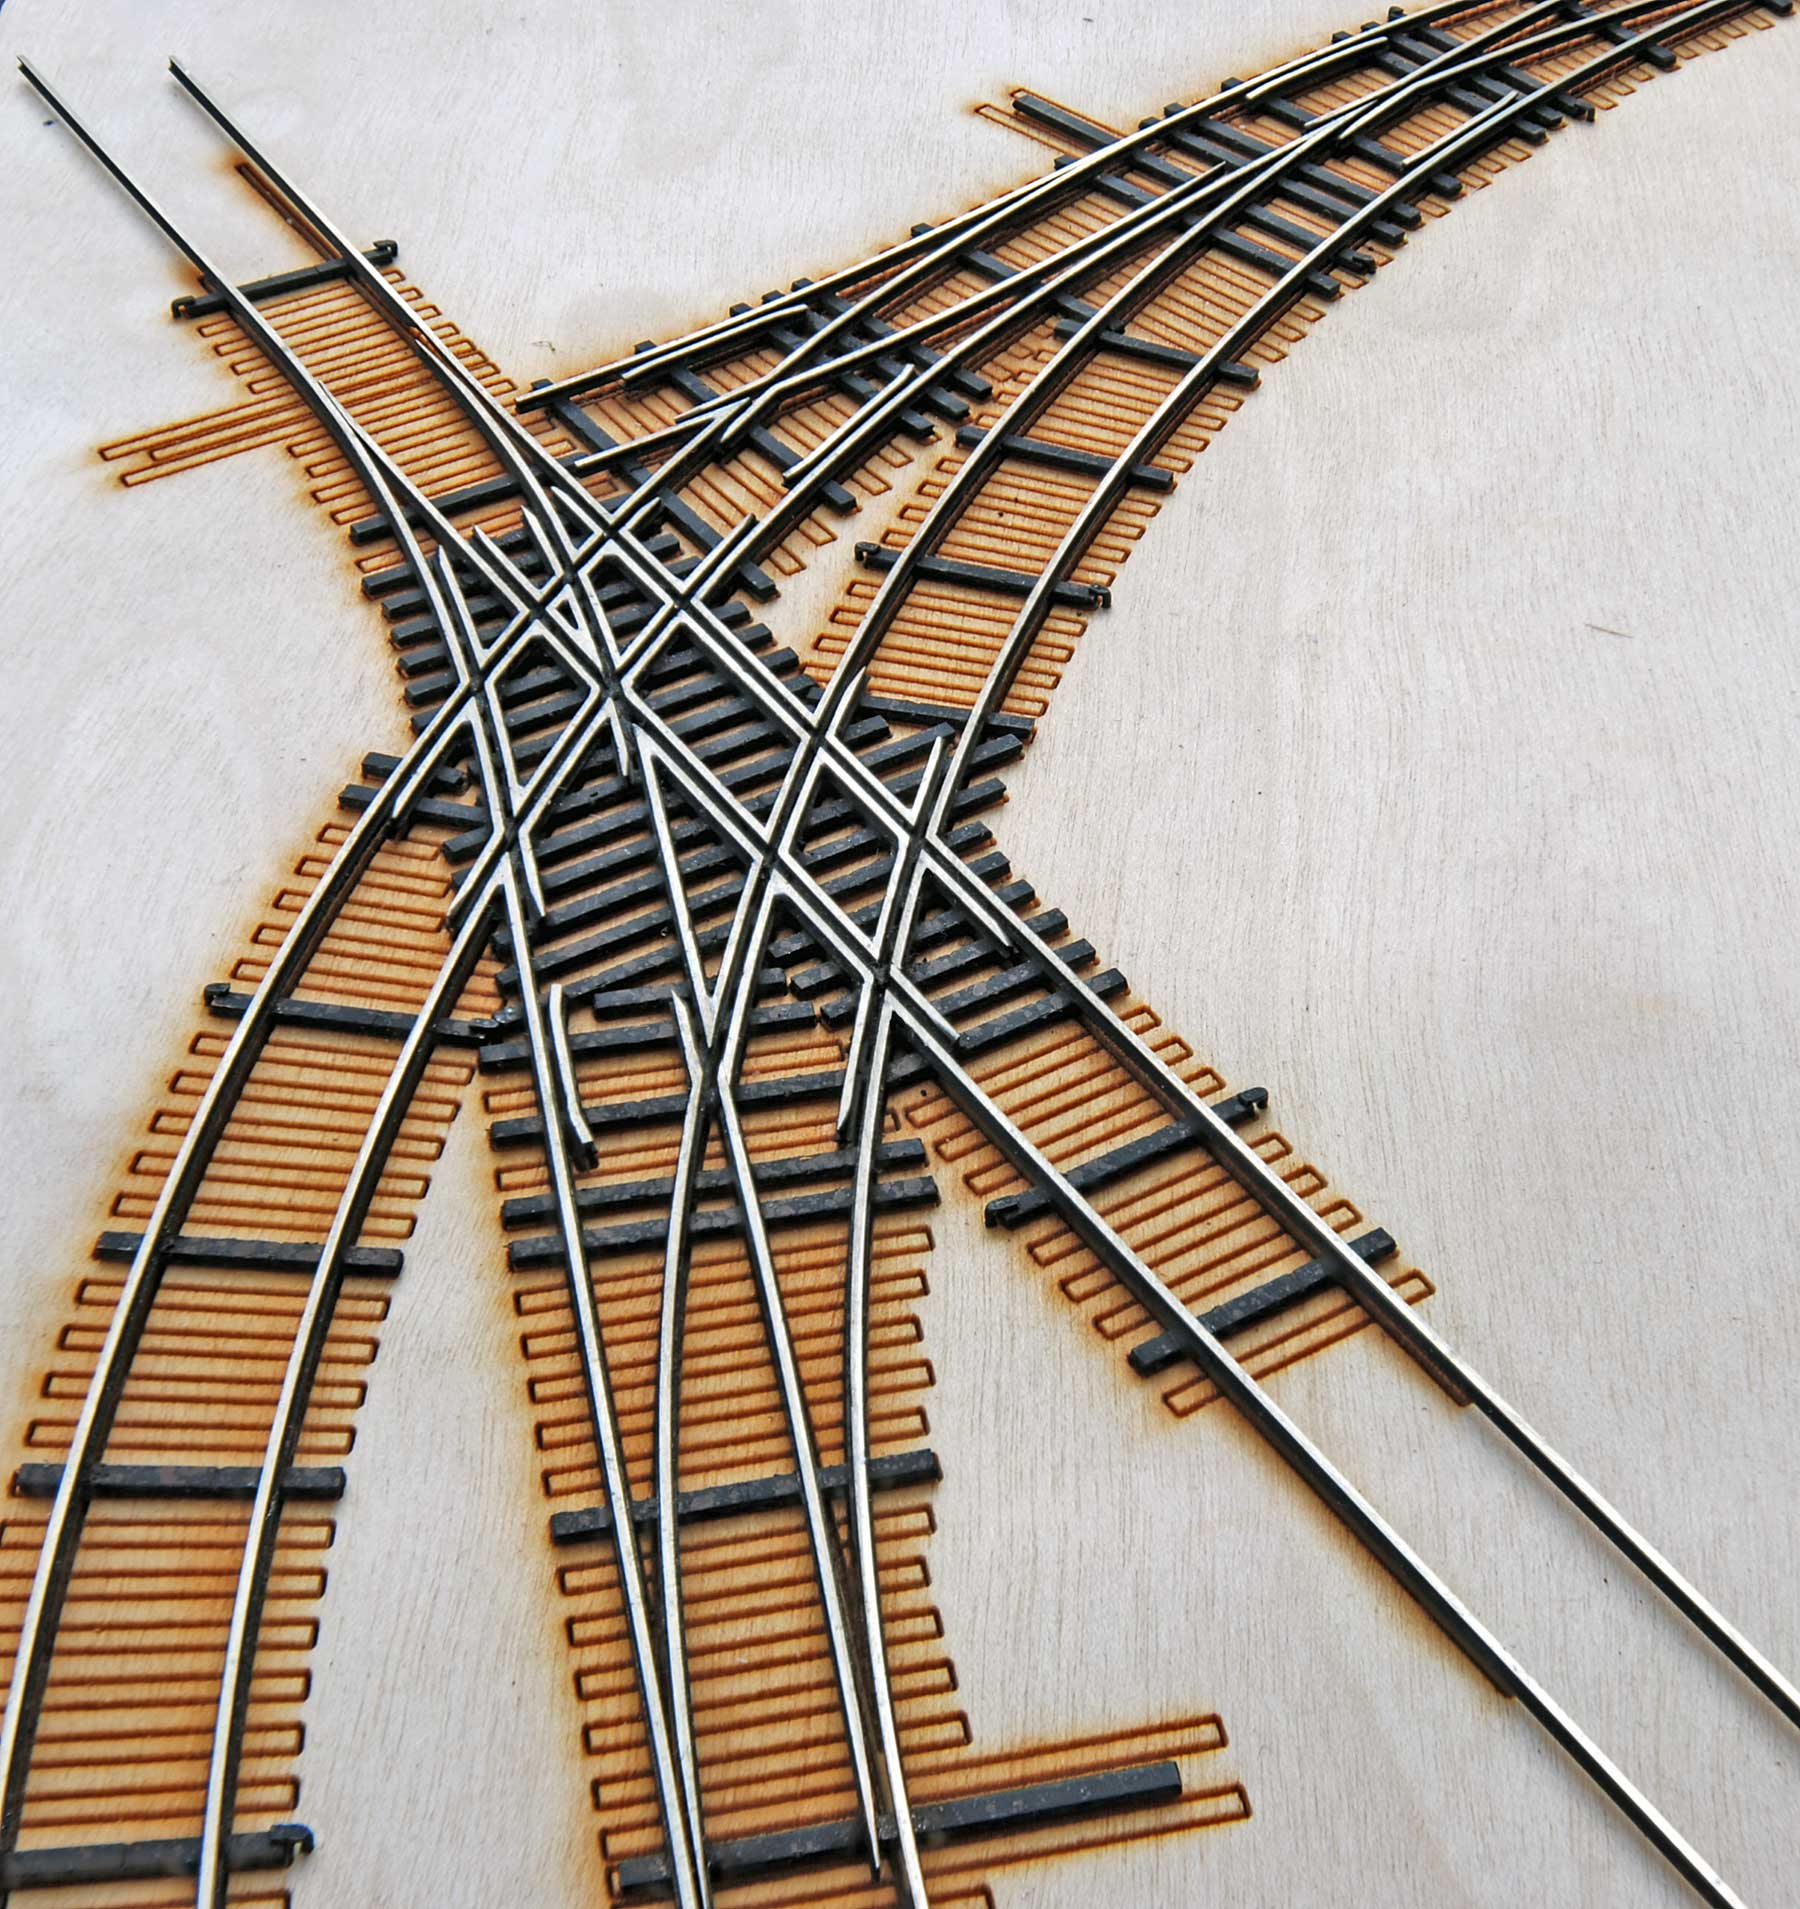 Kato N Scale Track Plans